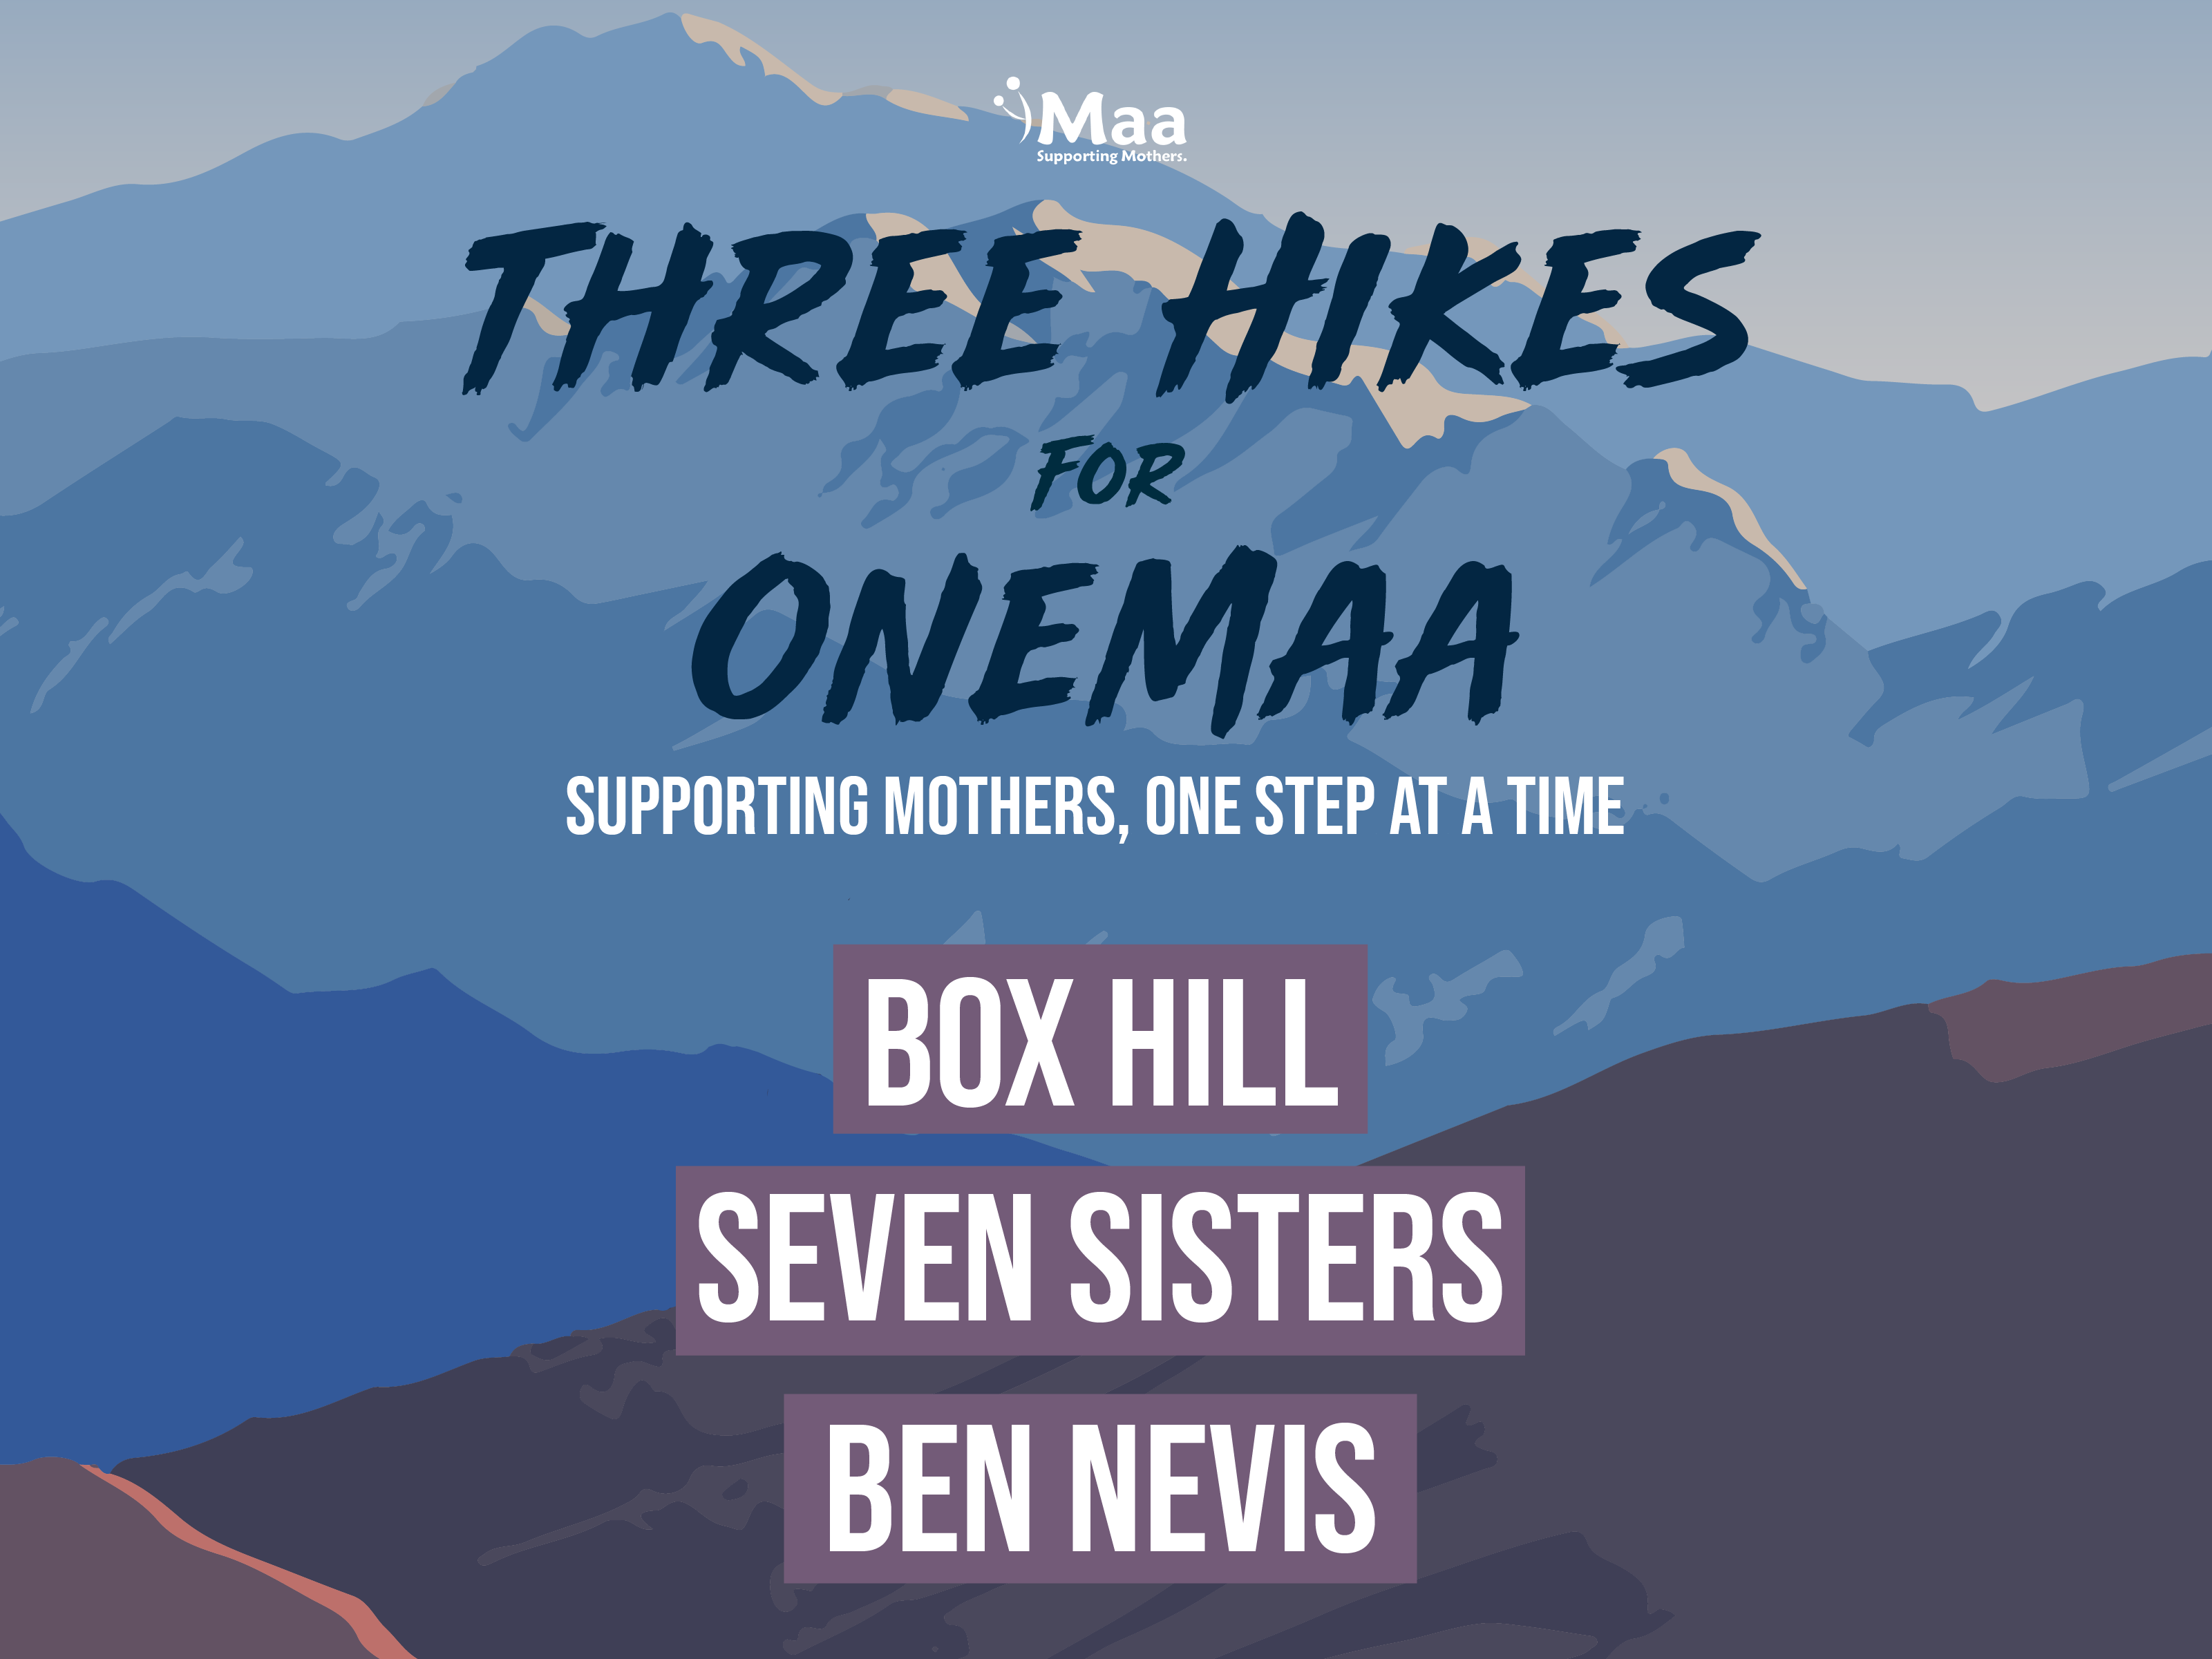 3 Hikes for OneMaa